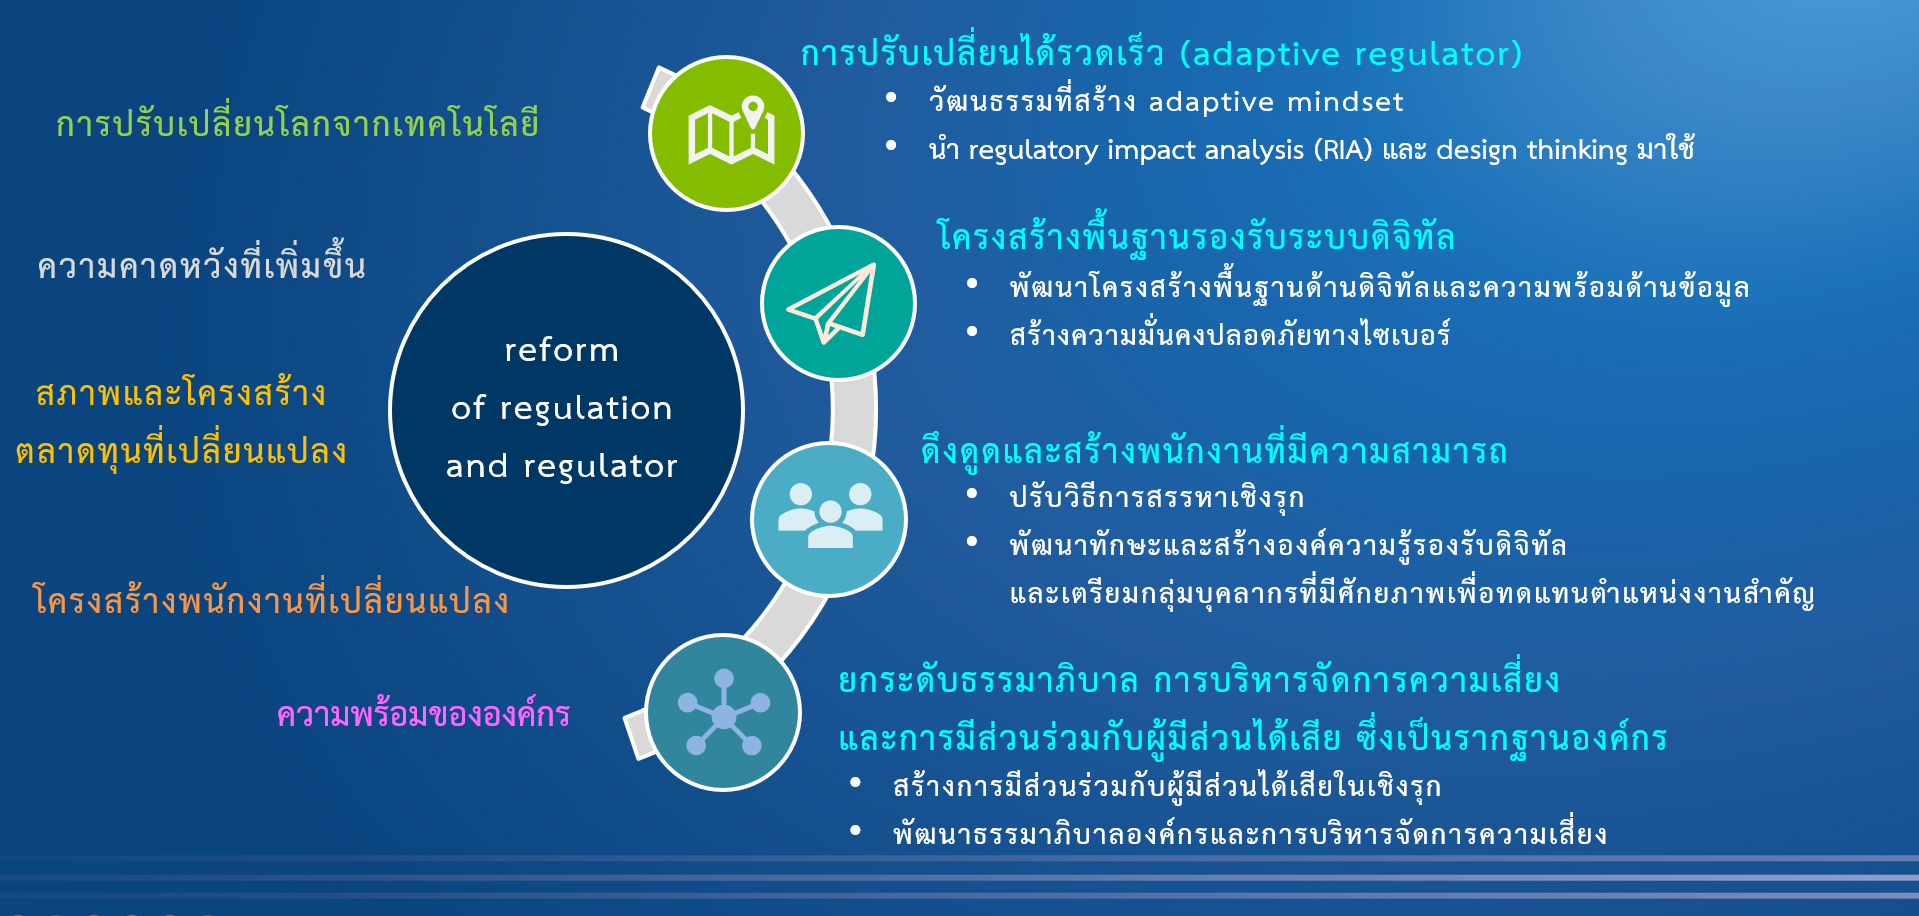 reform of regulation and regulator.png